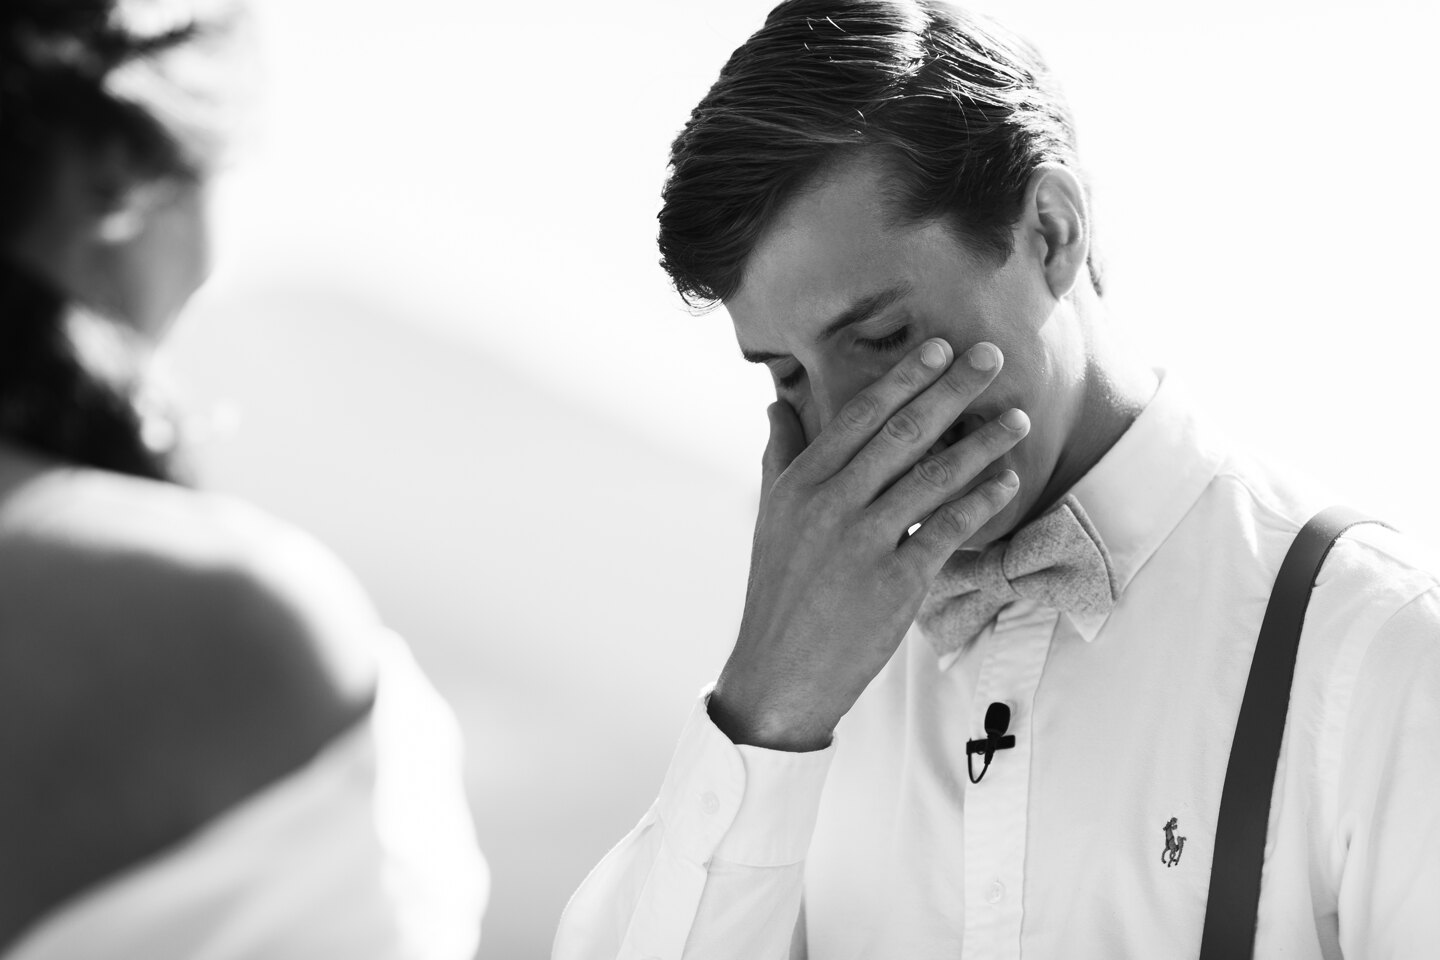 Wedding Photographer in Italy: The moment where the groom did not hold back the emotions from the words of the vow to his beloved and wipes the tears from his face